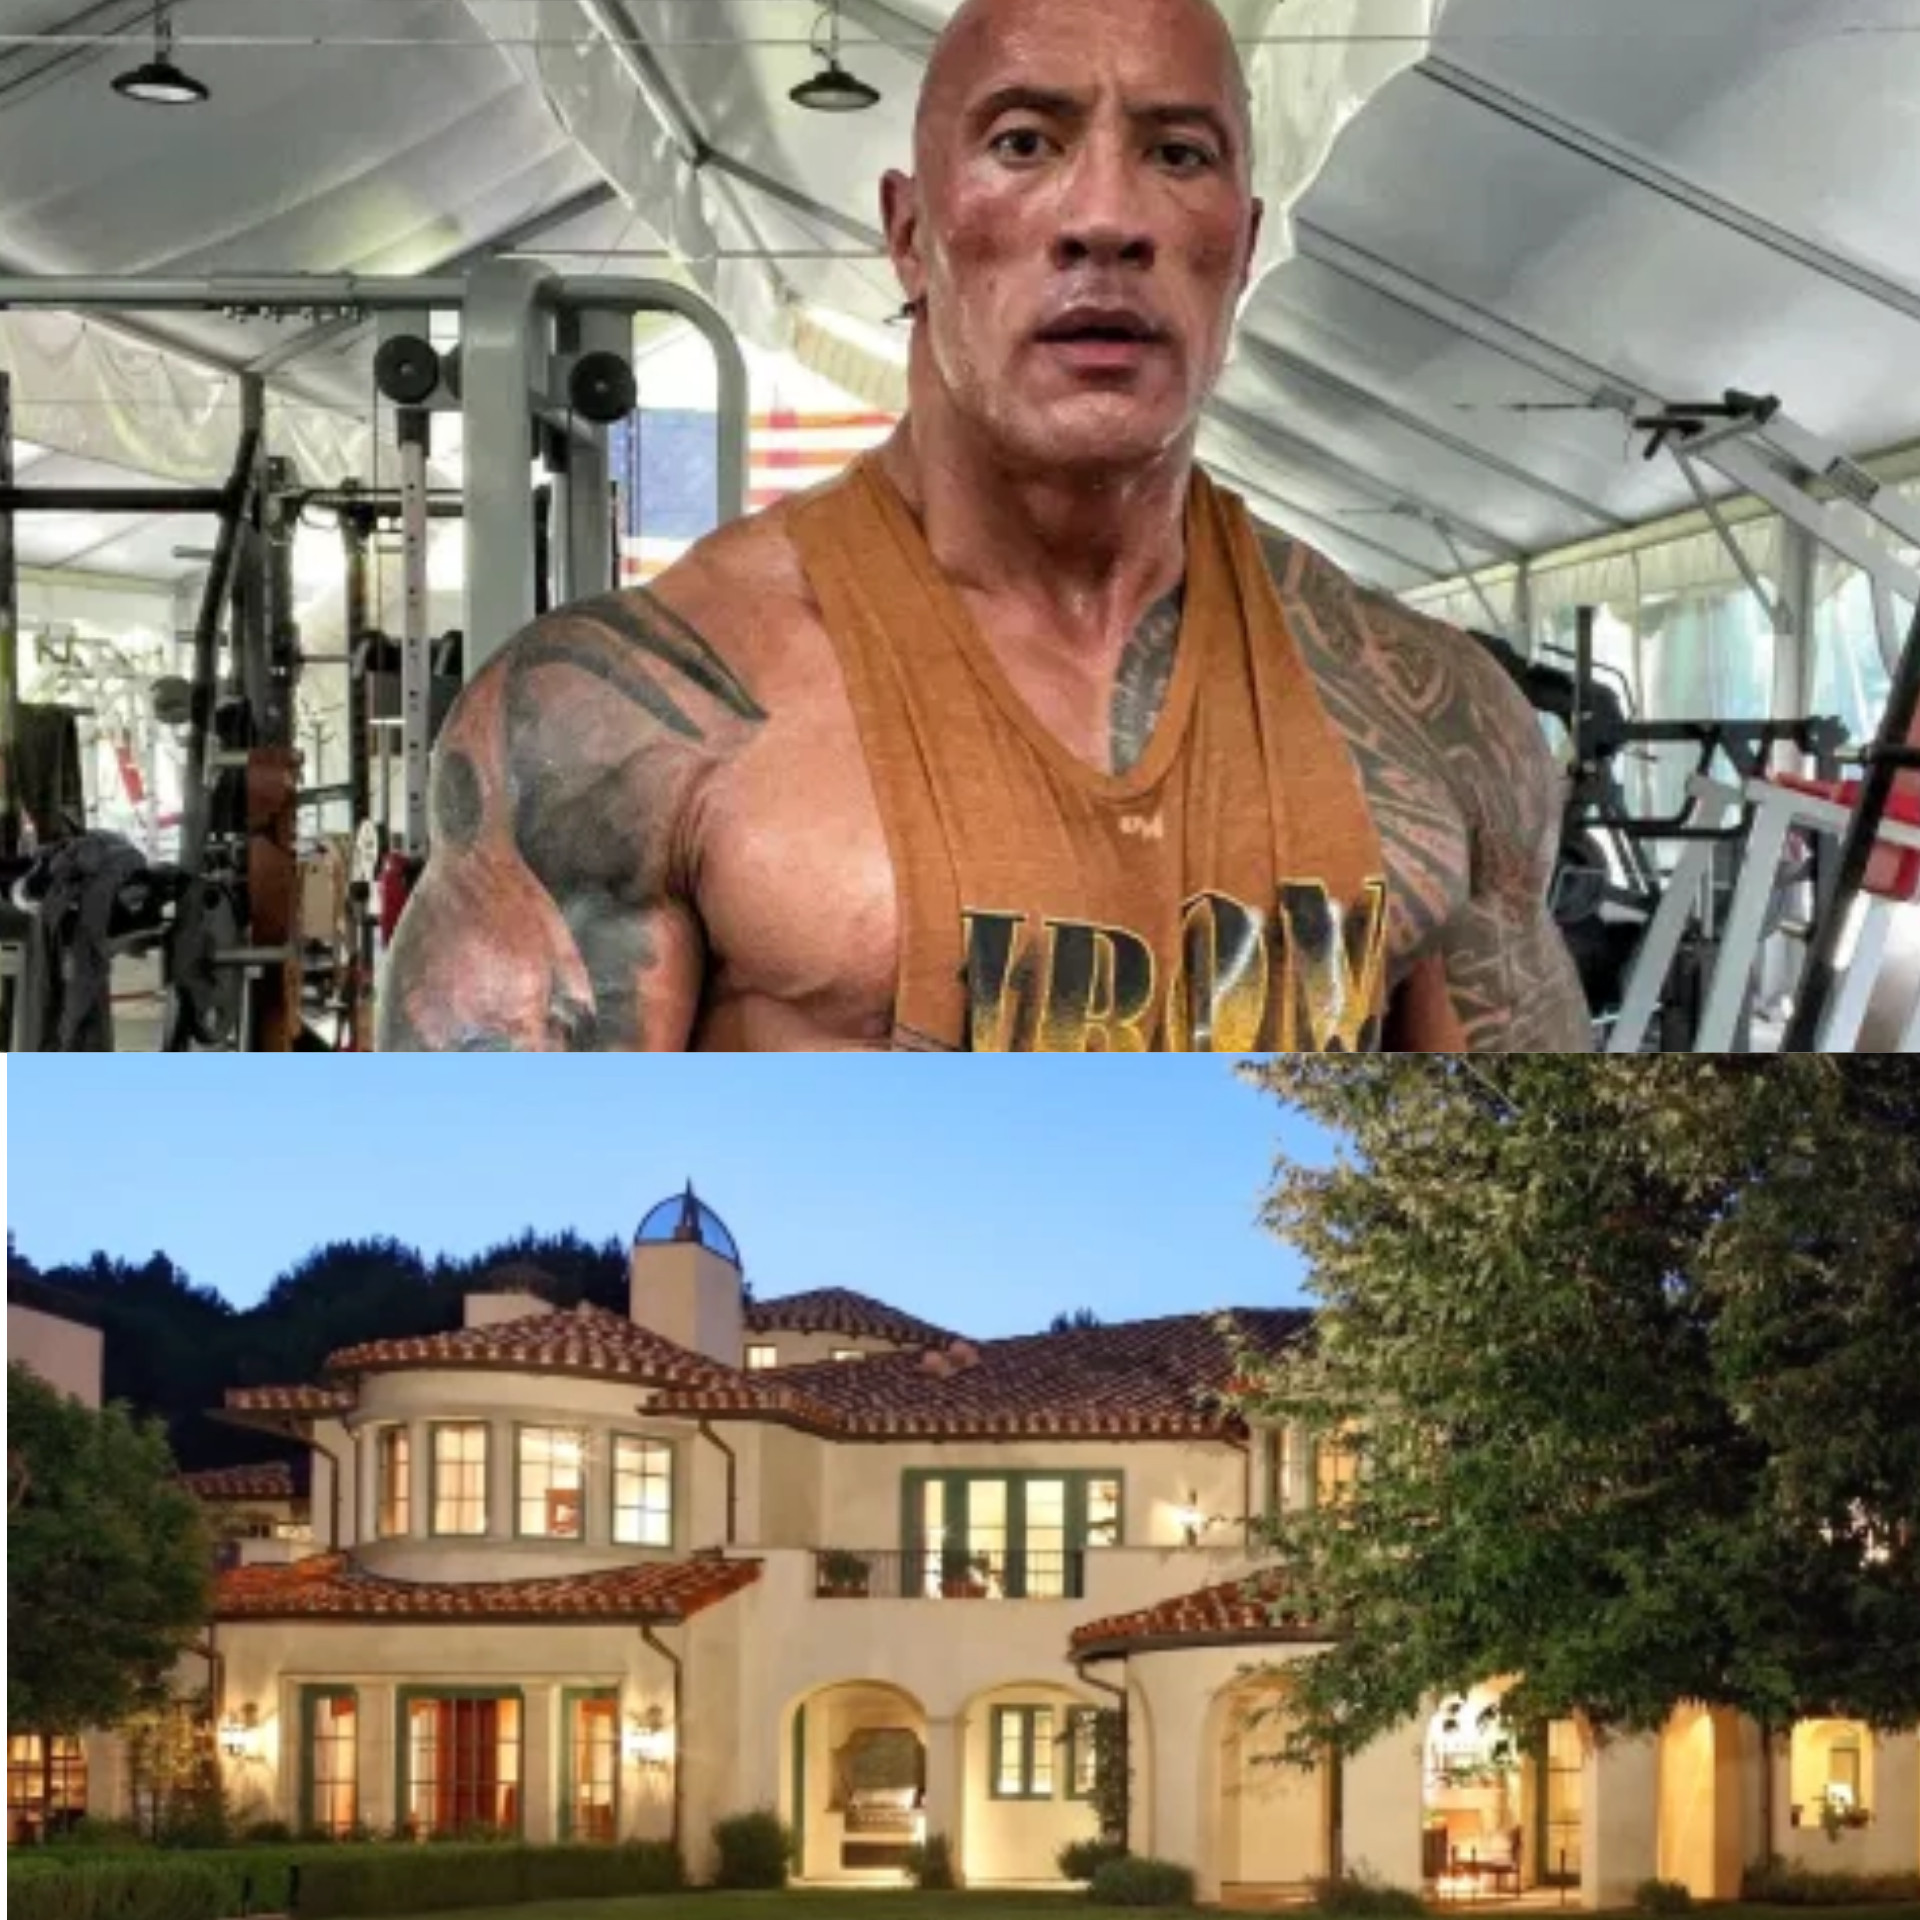 32 Interior Design from The Rock $27.8m mansion with full-size tennis court, a baseball pitch, guest house, movie theater & music studio